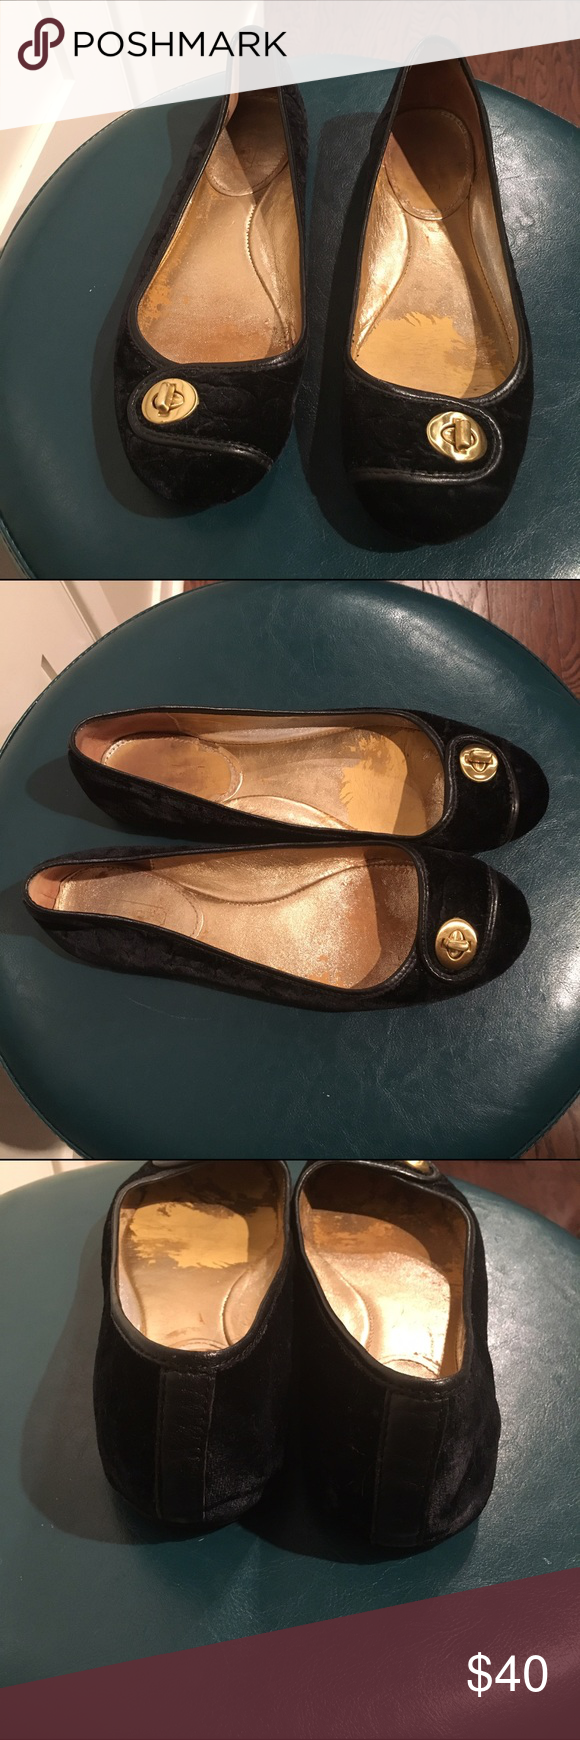 Coach black velvet ballet flats sz 8.5 Used Coach black velvet ballet flats sz 8.5. The insides and soles are worn but the velvet on the outside is like new. I never wore these outside, only around the office. Coach Shoes Flats & Loafers